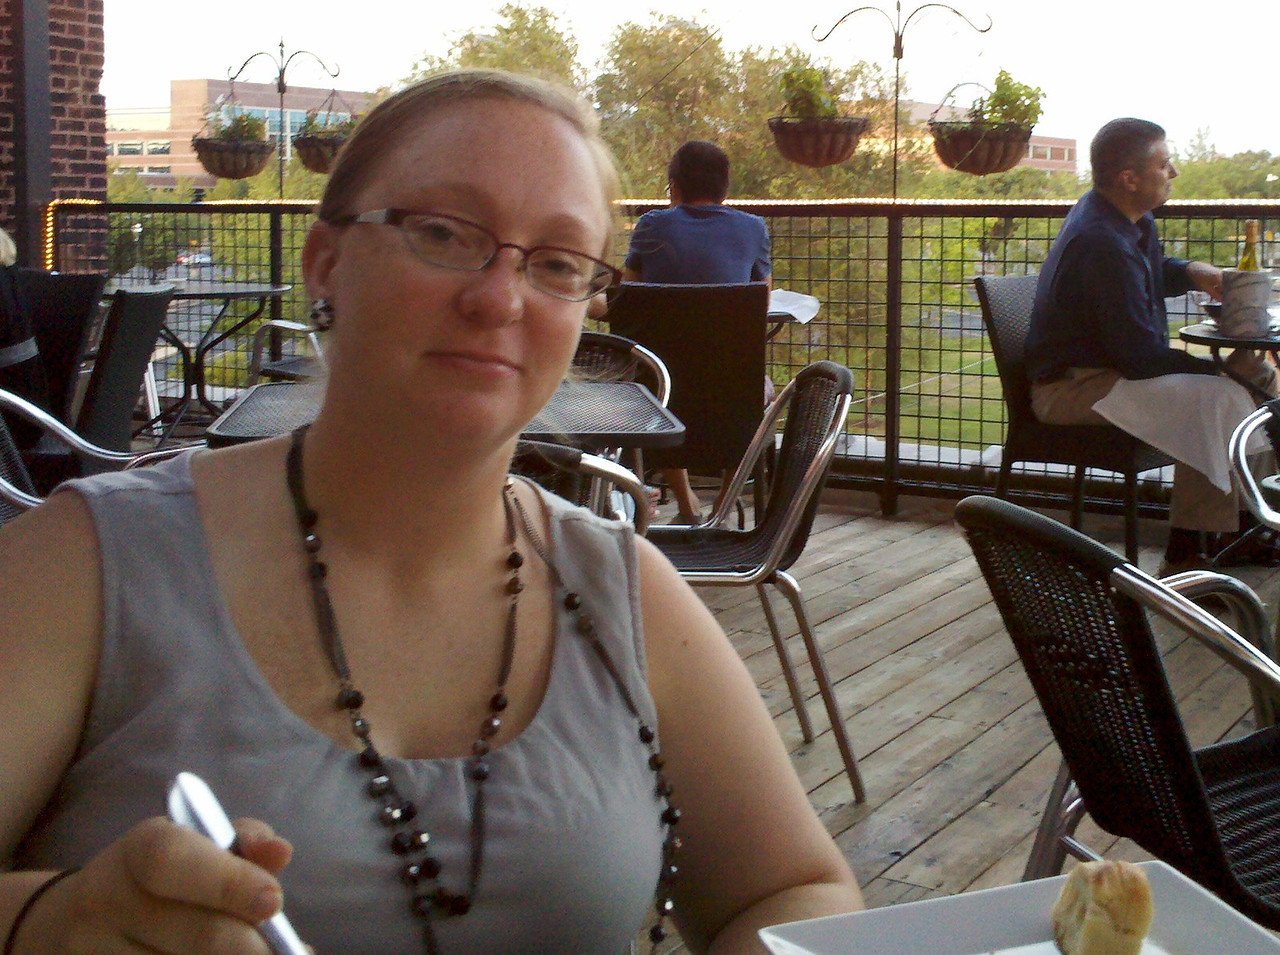 Adam, Heather, Cyndy, and I had  a lovely dinner in downtown St. Louis at a little French bistro rooftop cafe, the Vin de Set.